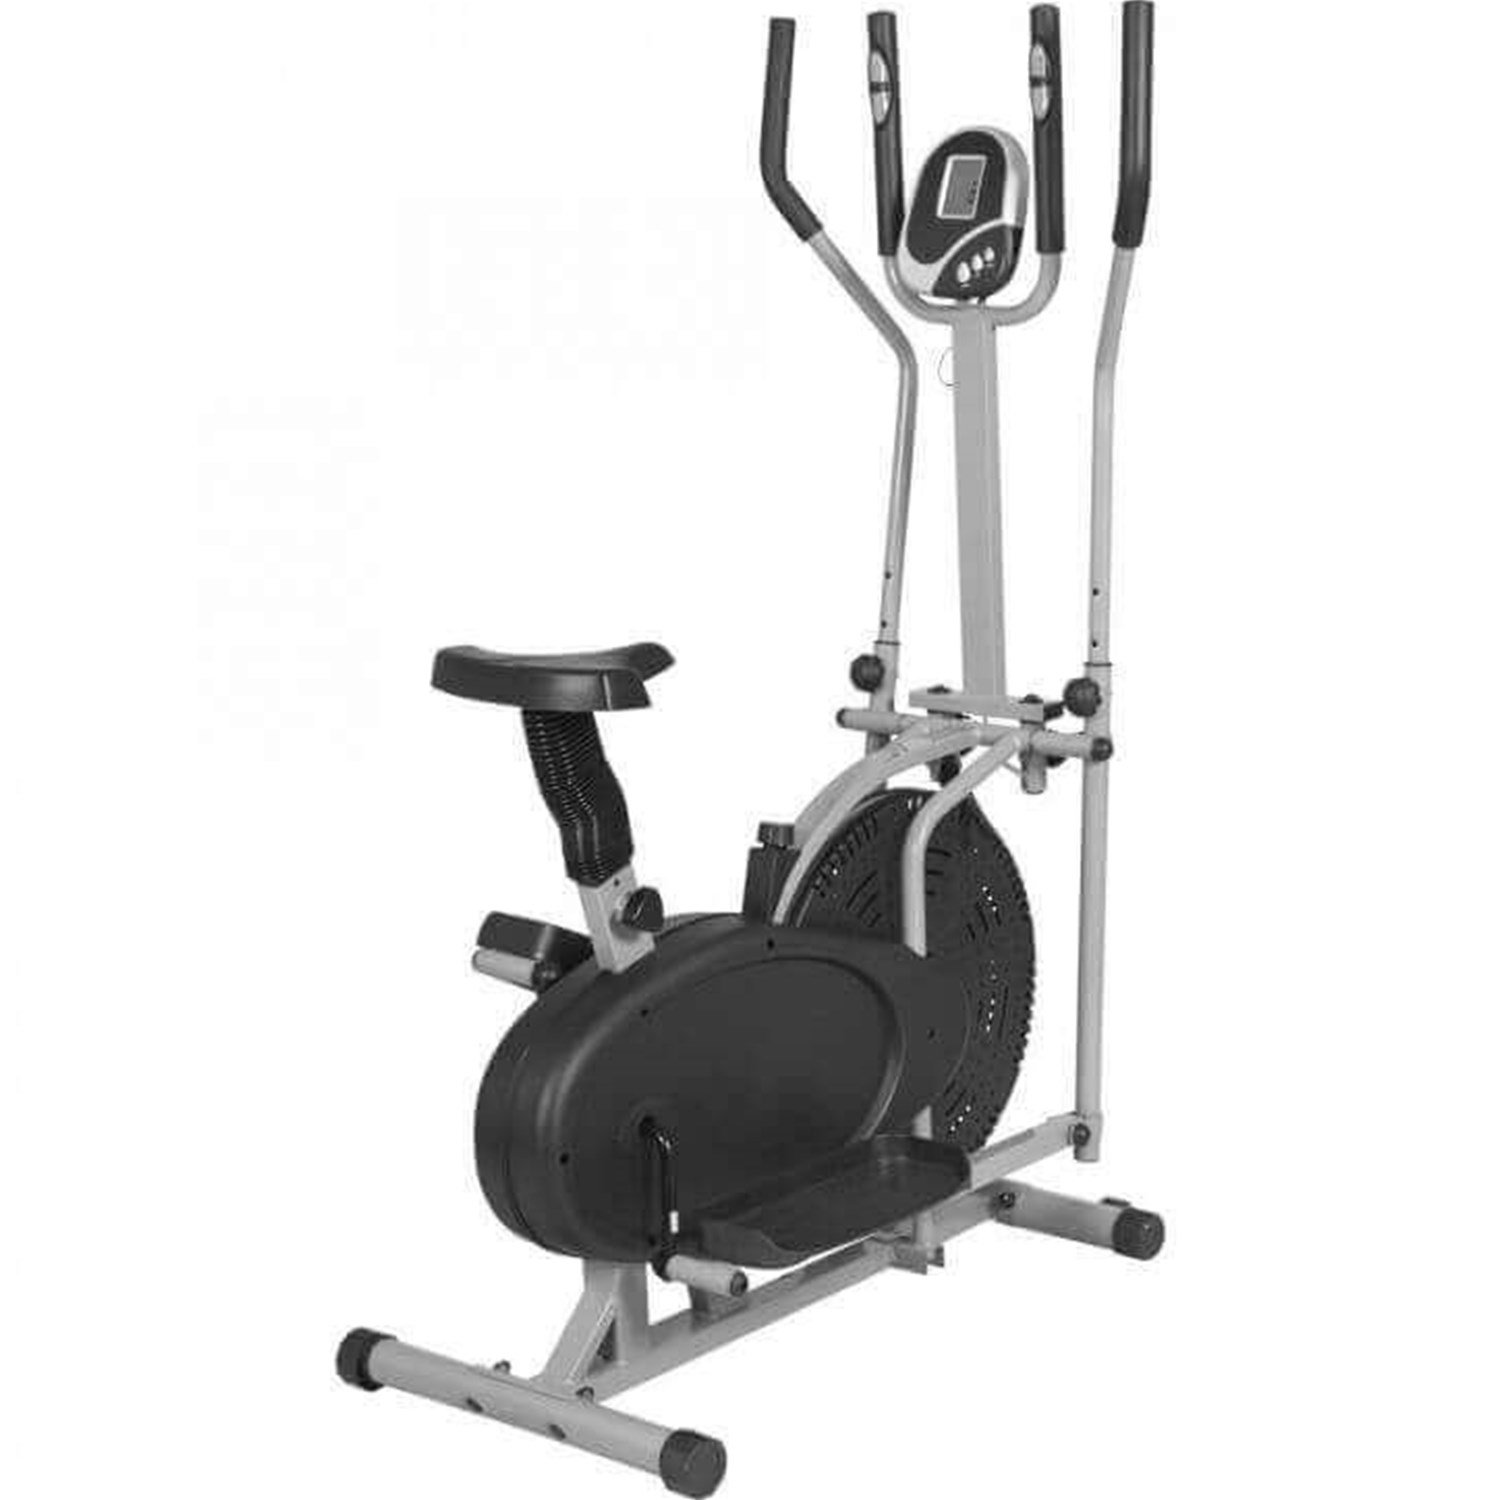 Crosstrainer Eliptical Bike - 1